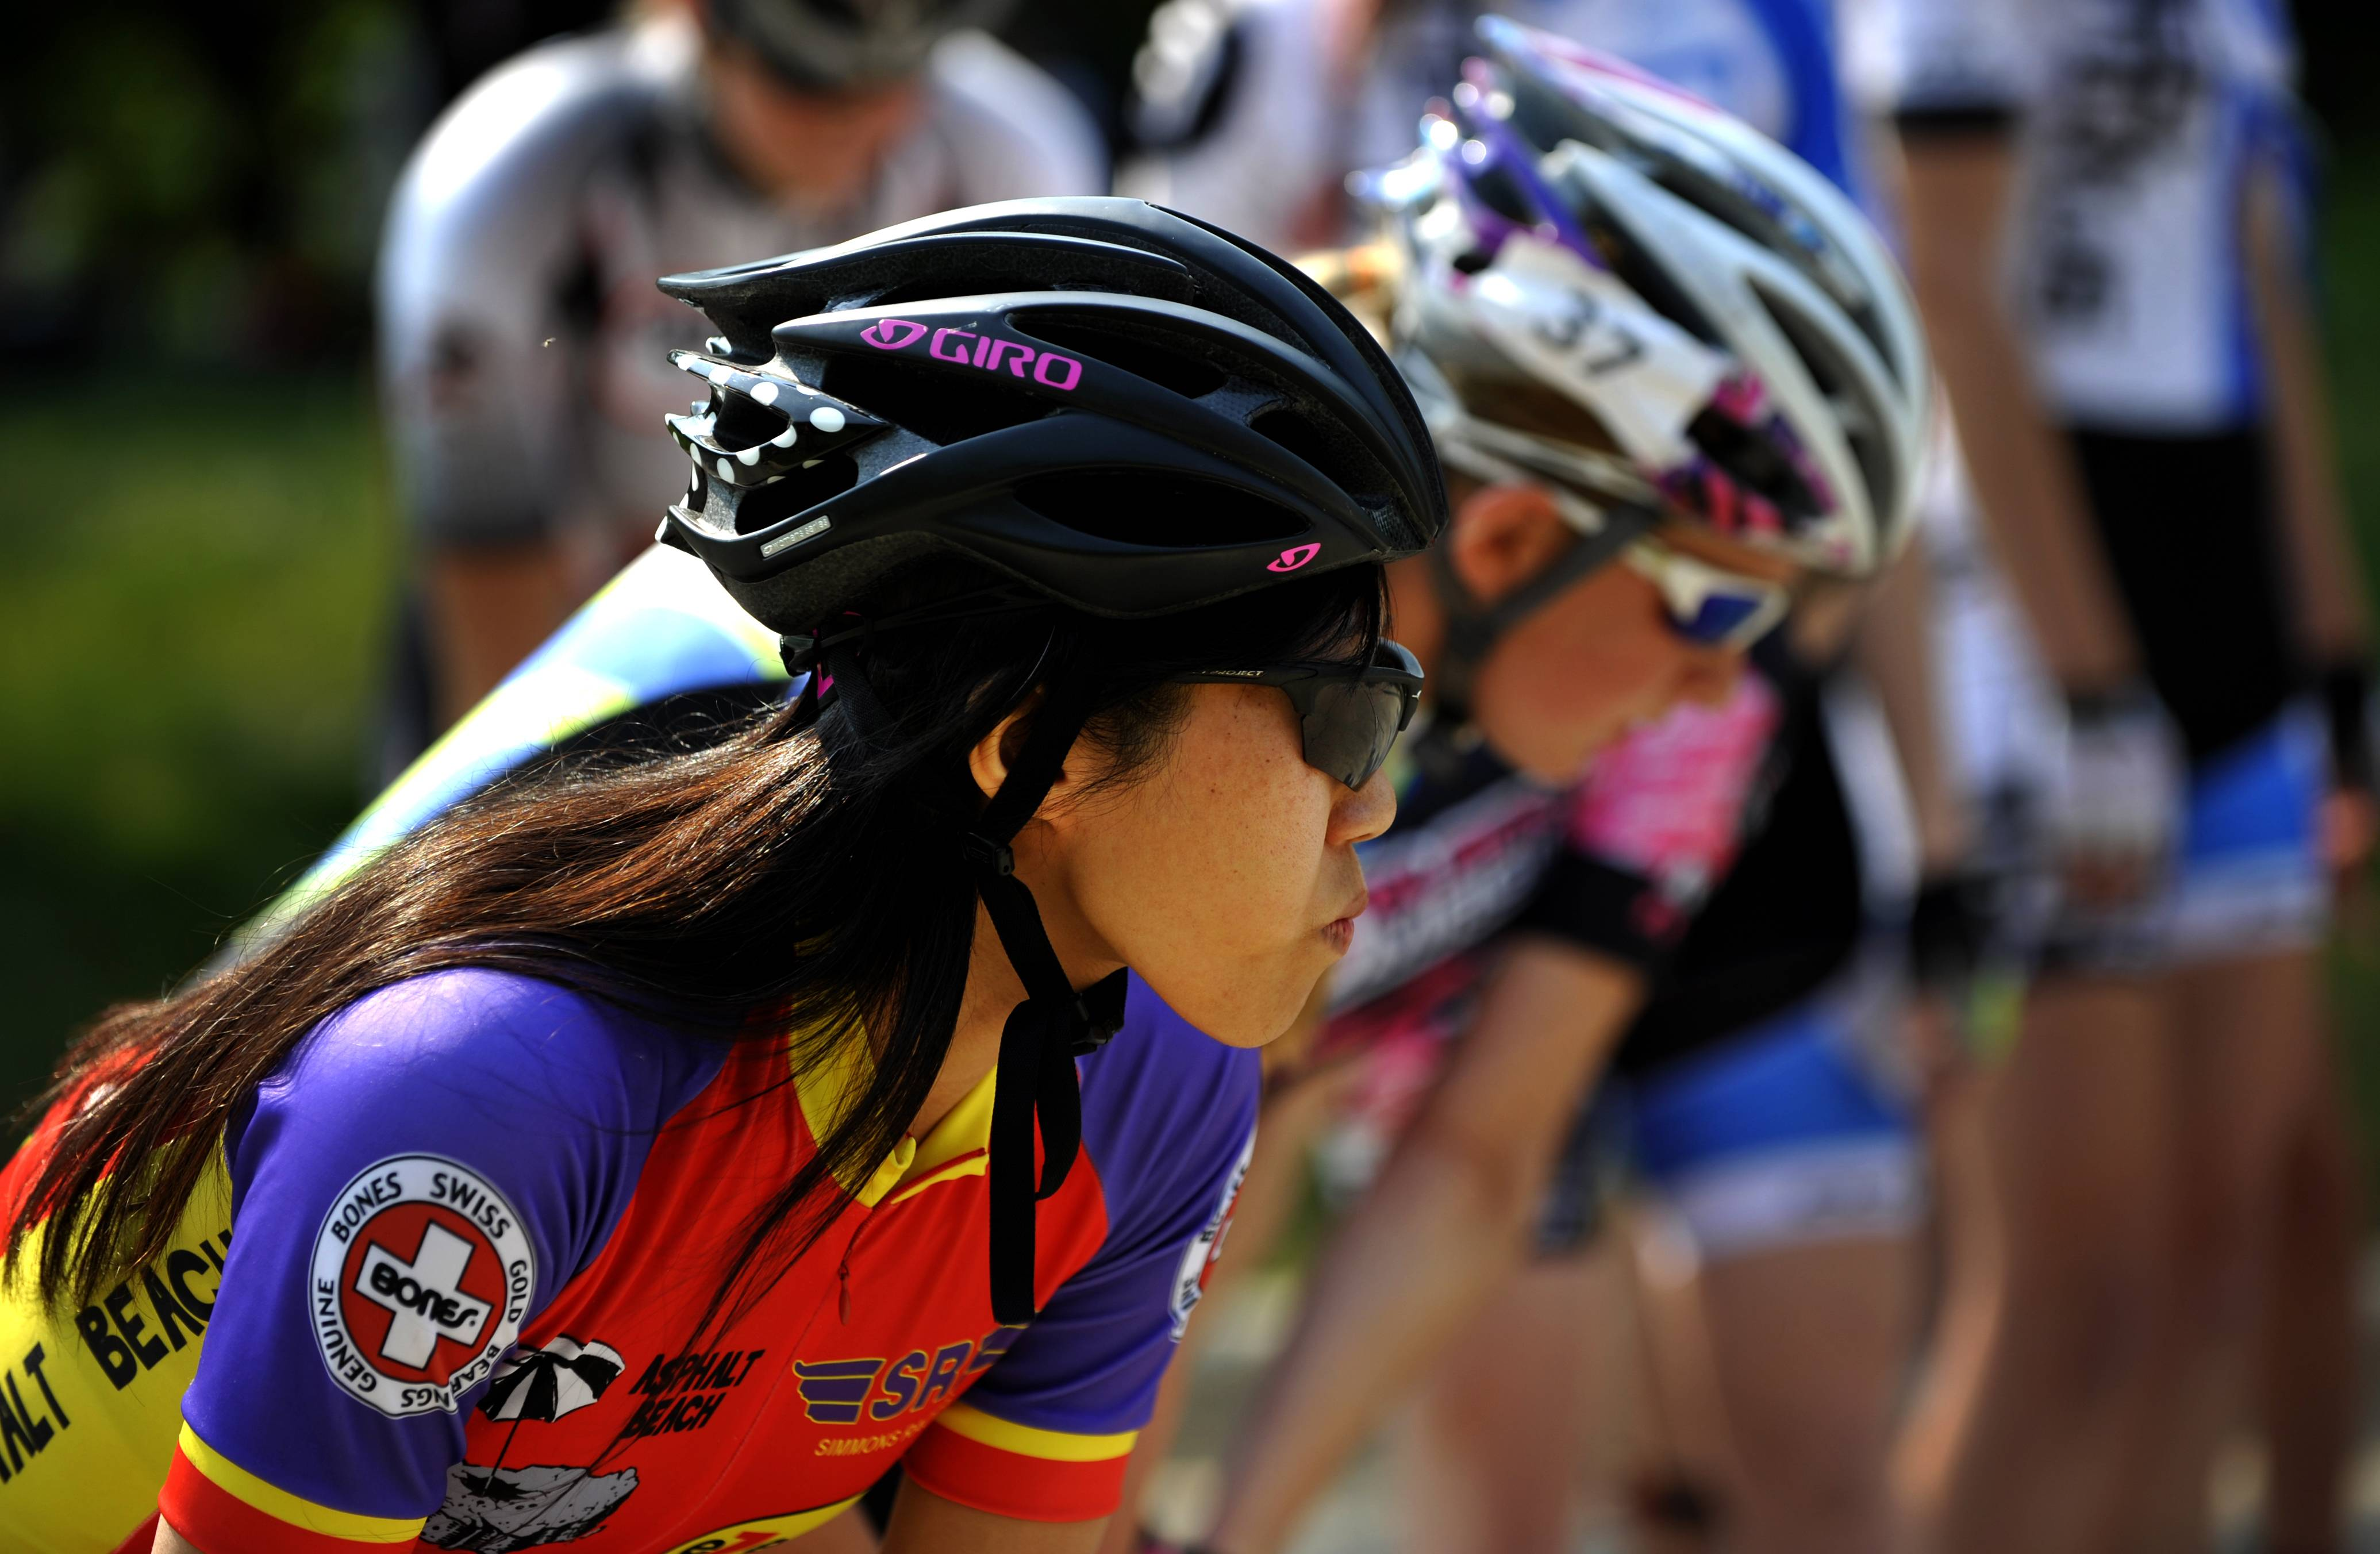 "Candy Wong of Ontario, Canada, prepares for the start of the women's elite marathon on Sunday at the Alexian Brothers Fitness for America Sports Festival in Hoffman Estates. Sunday's races were organized into recreational and elite categories with participants completing a 10k, half marathon or full marathon. Organizer Peter Starykowicz of Hoffman Estates says ""position is most important"" for marathon skaters who rely on drafts from the other skaters."